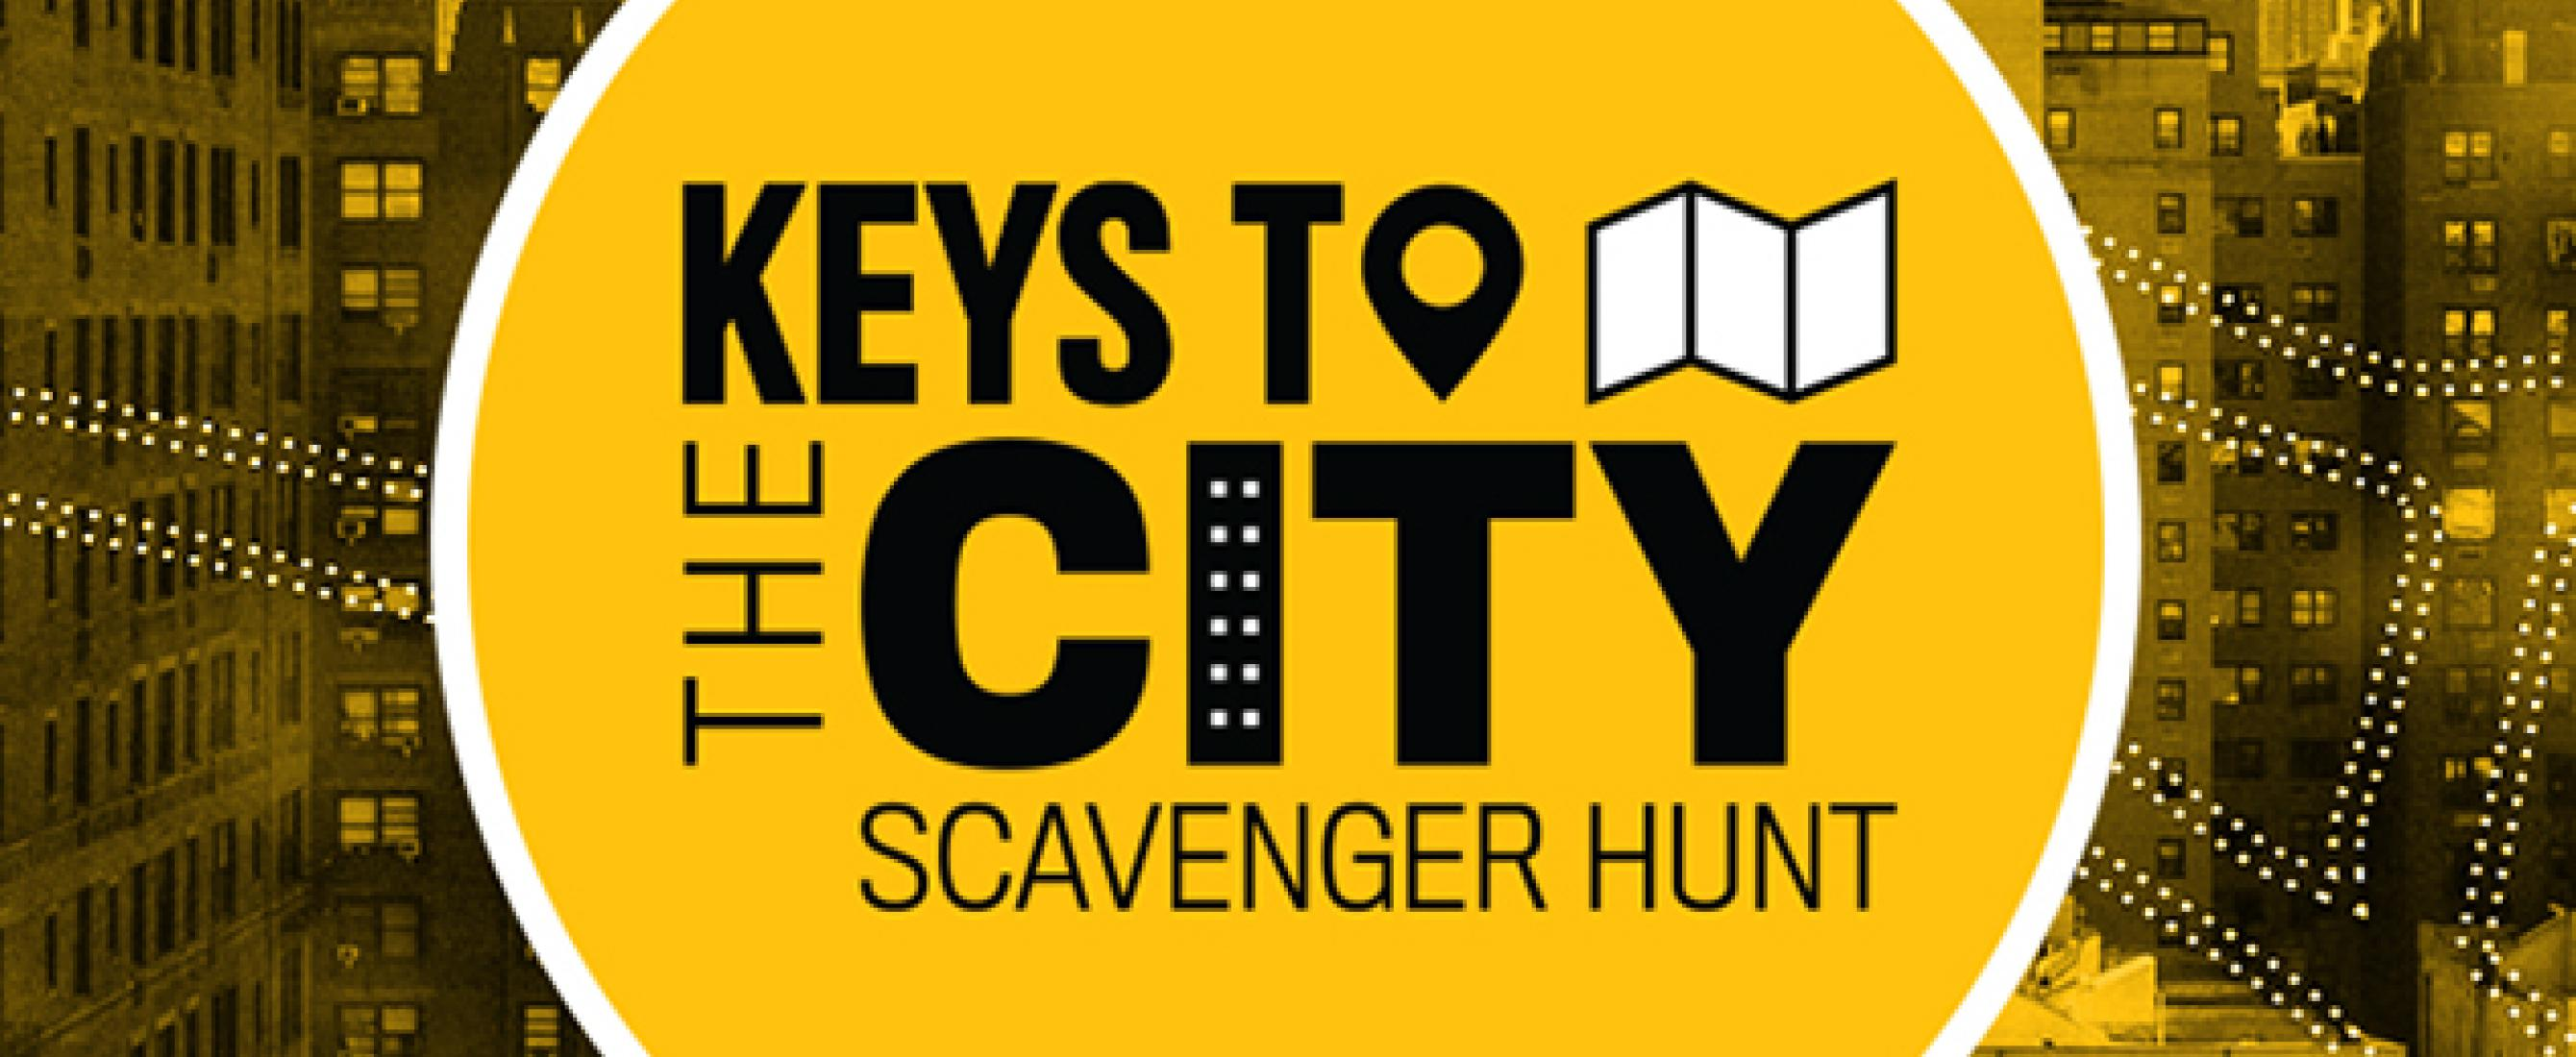 Keys to the City: A Great Day in Harlem